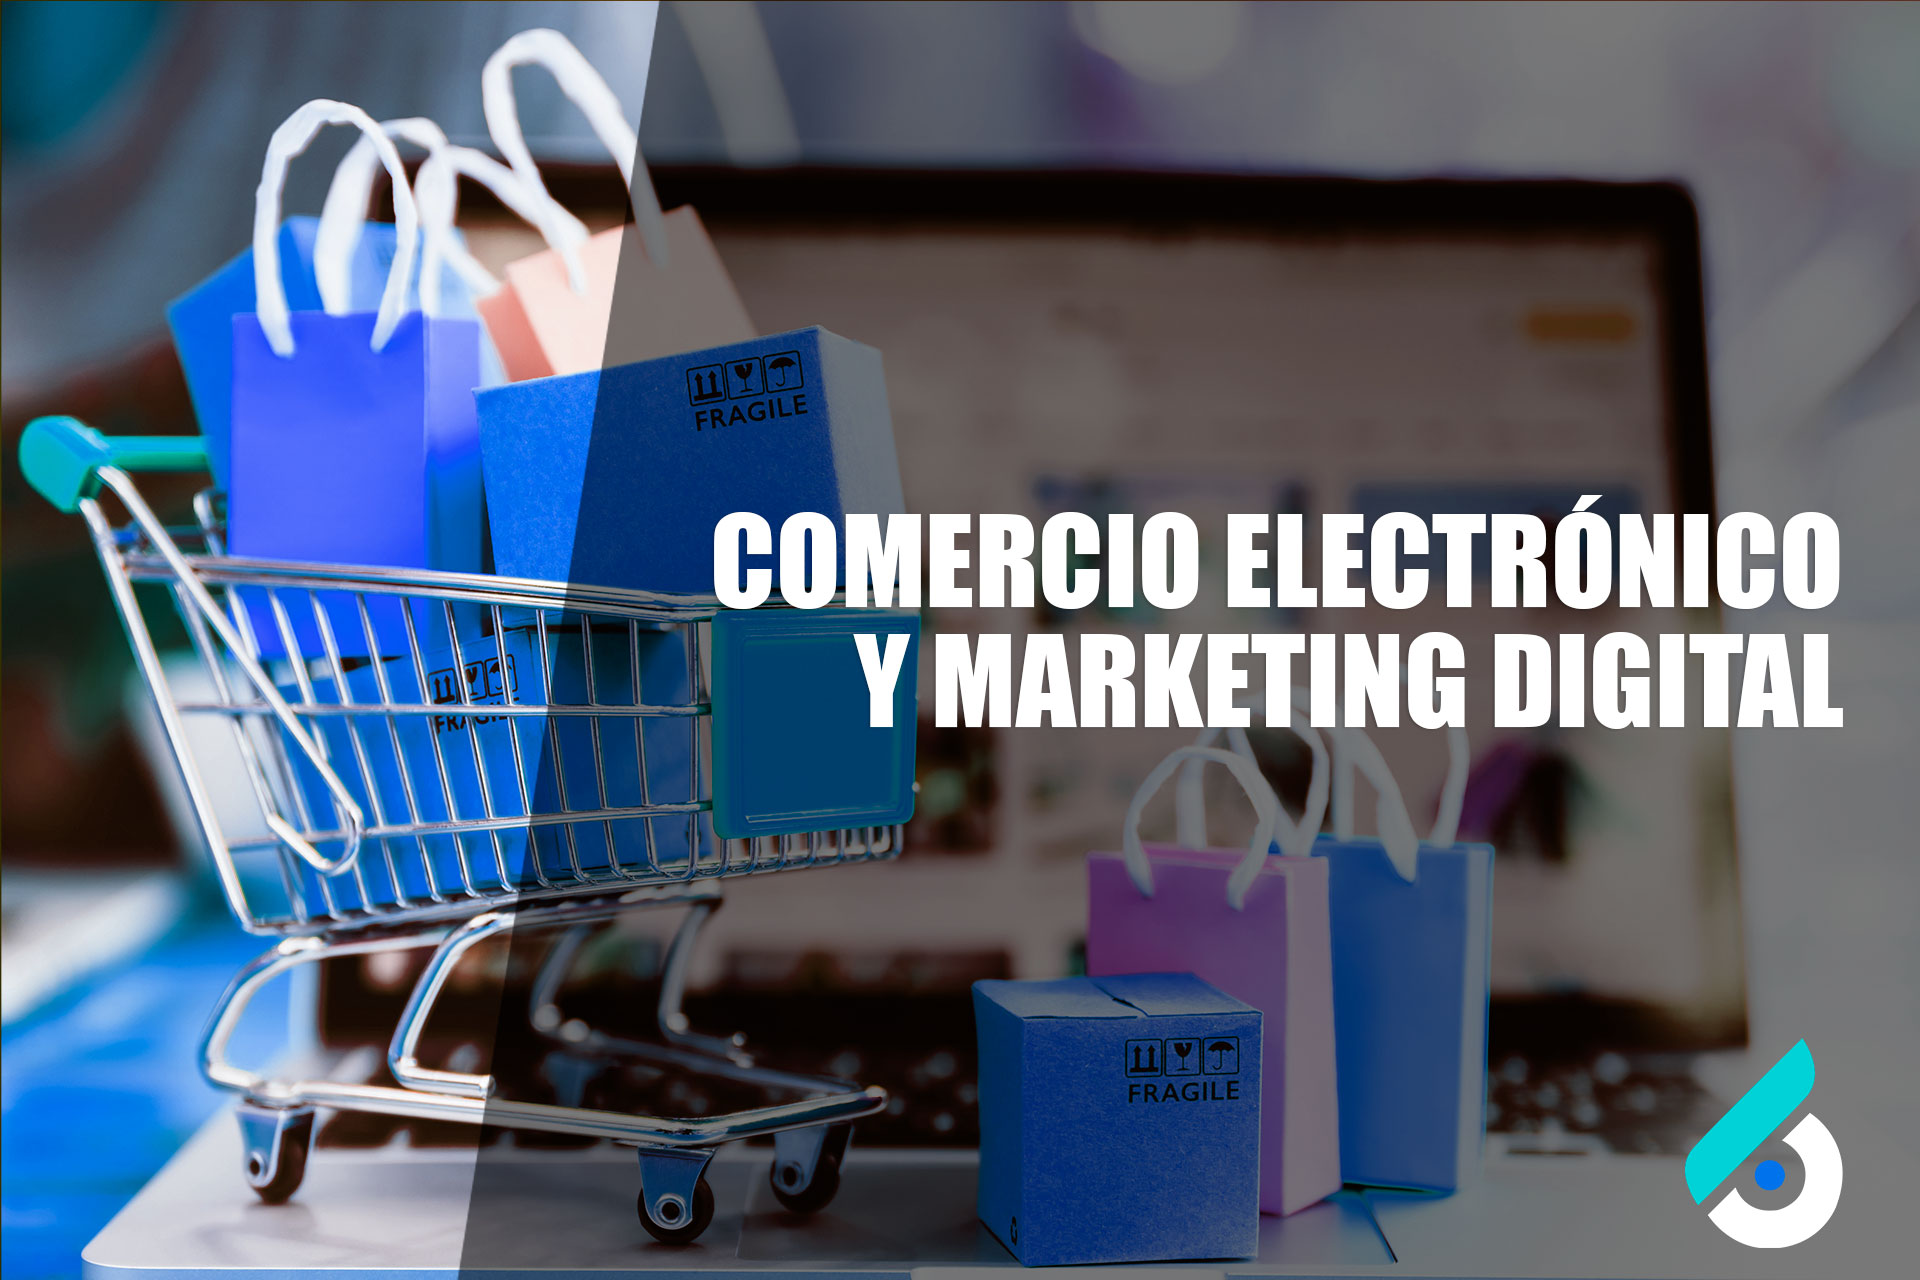 DMIPE-20-01-13-0447-1 | Comercio Electrónico y Marketing Digital